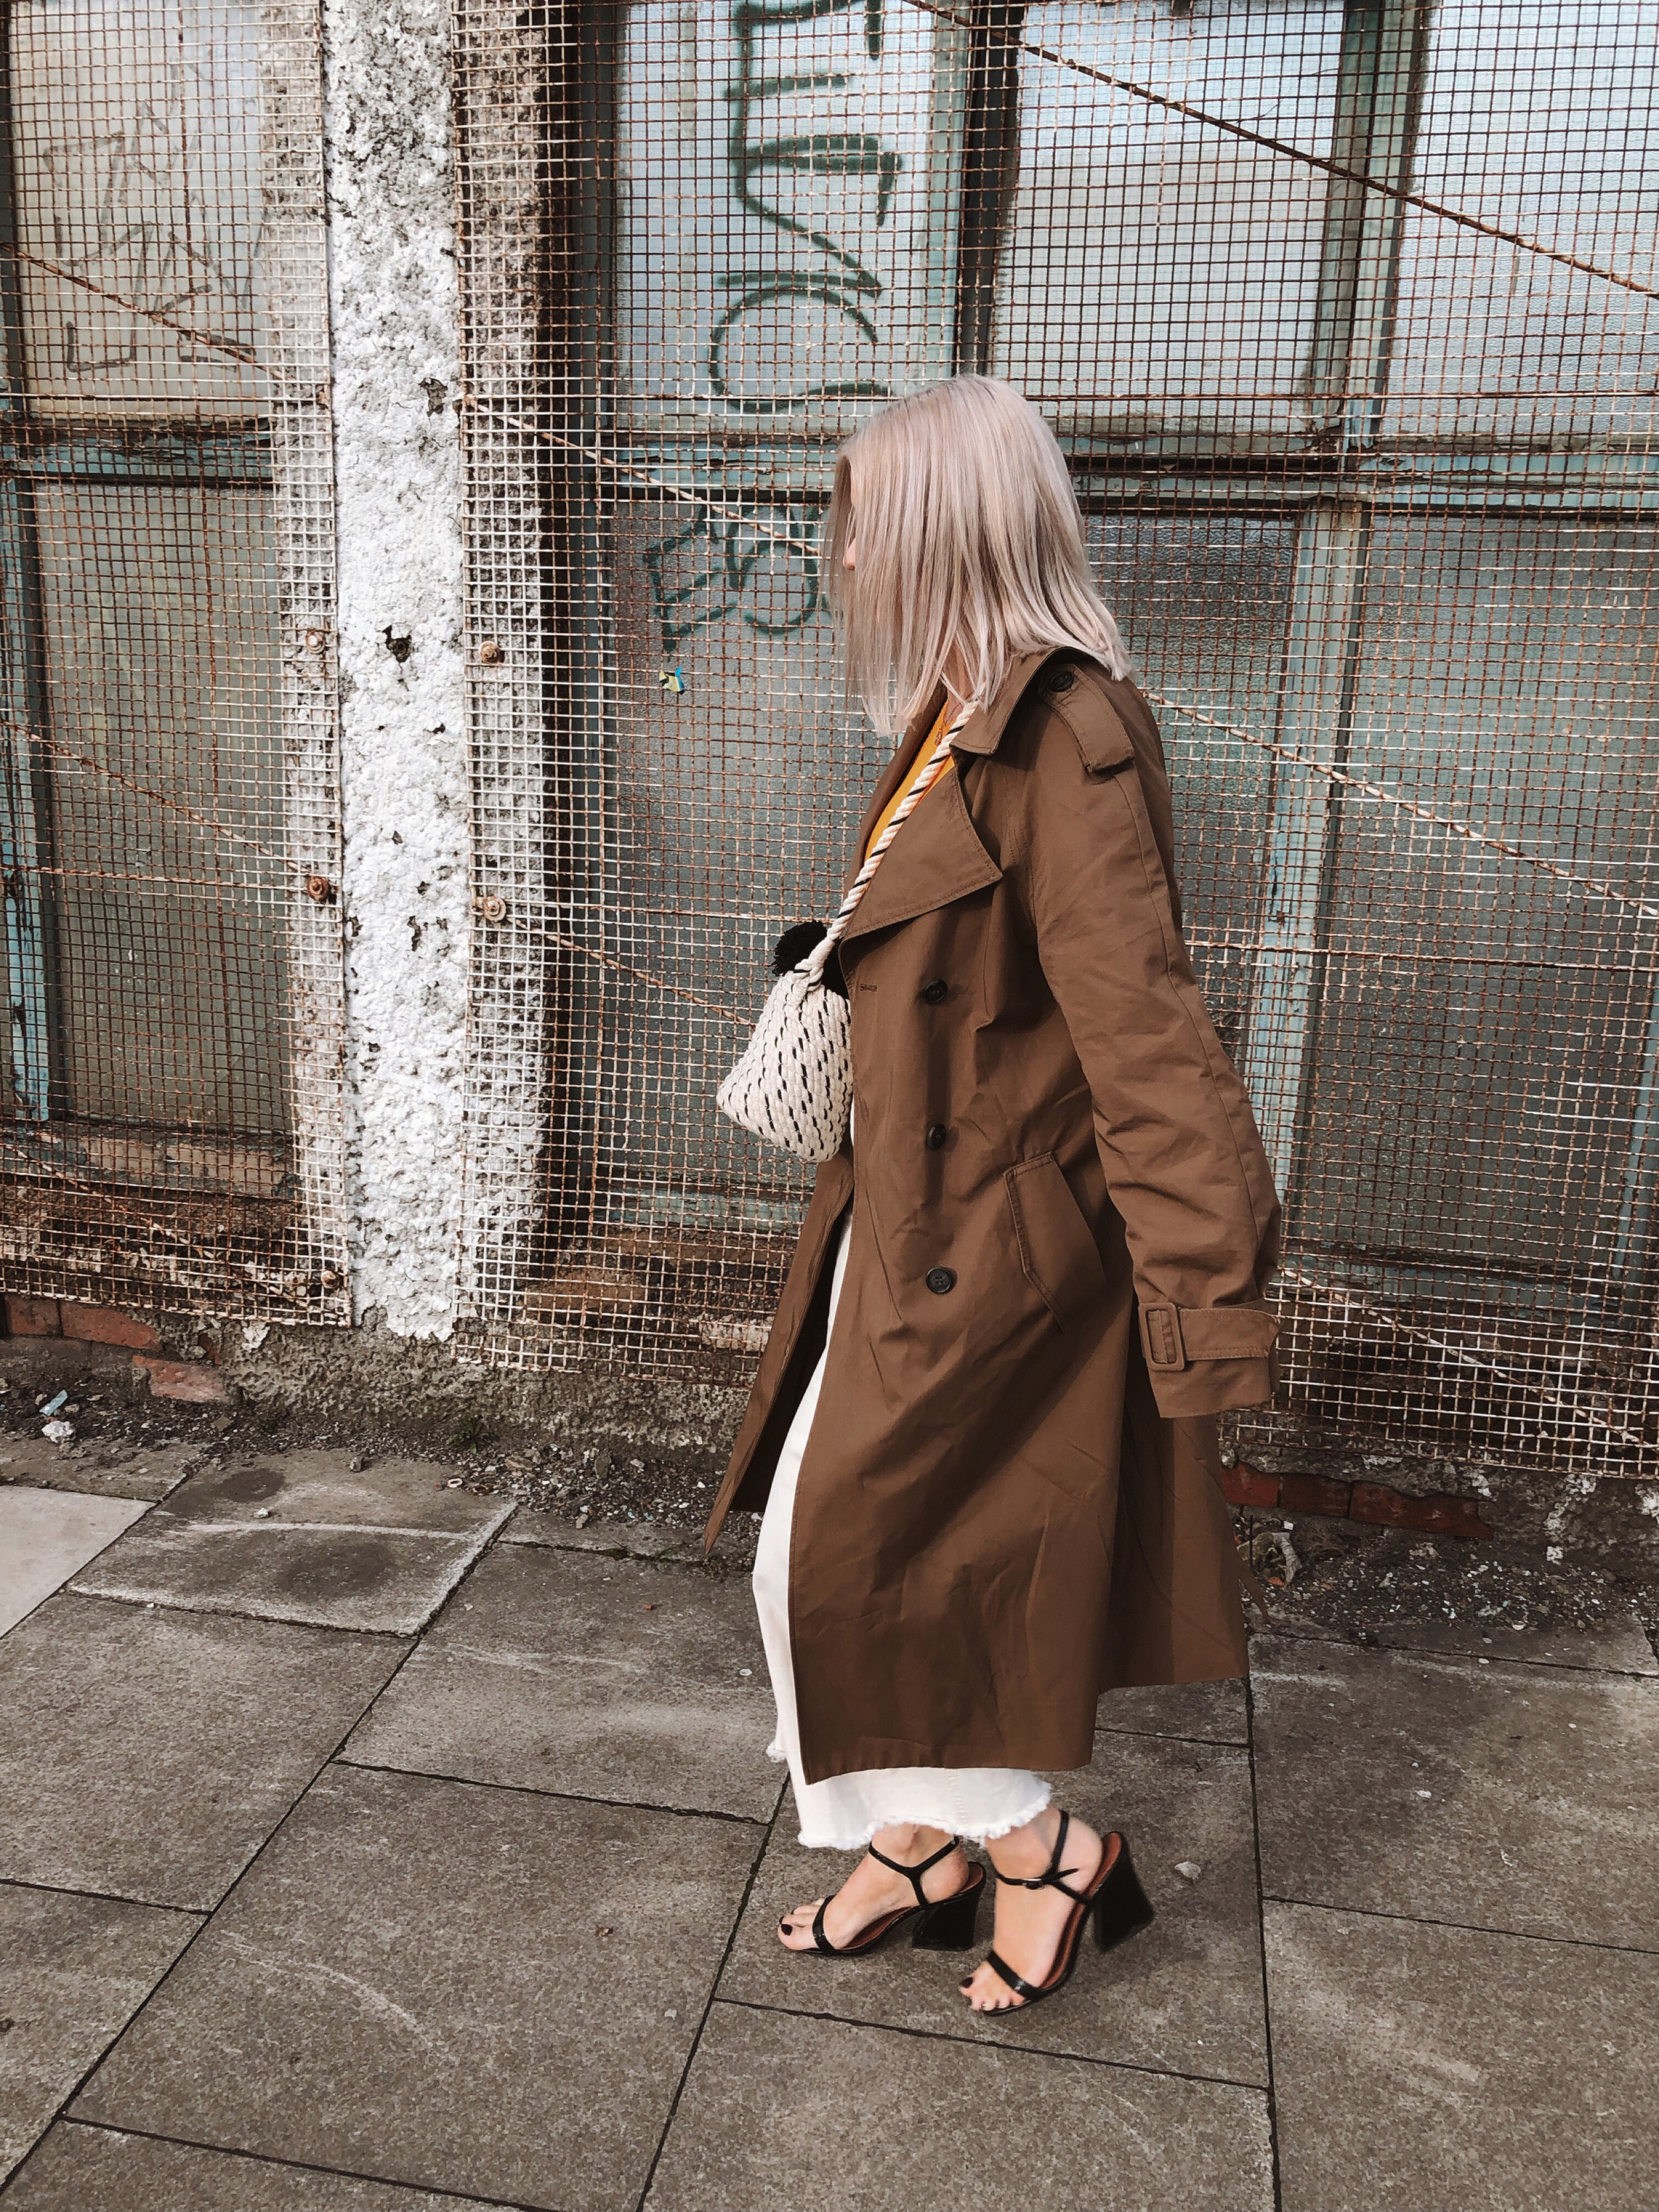 h&m studio collection ss19, cream jeans, orange tank top, ribbed tank top, trench coat, black heels, joey taylor, northern magpie 6